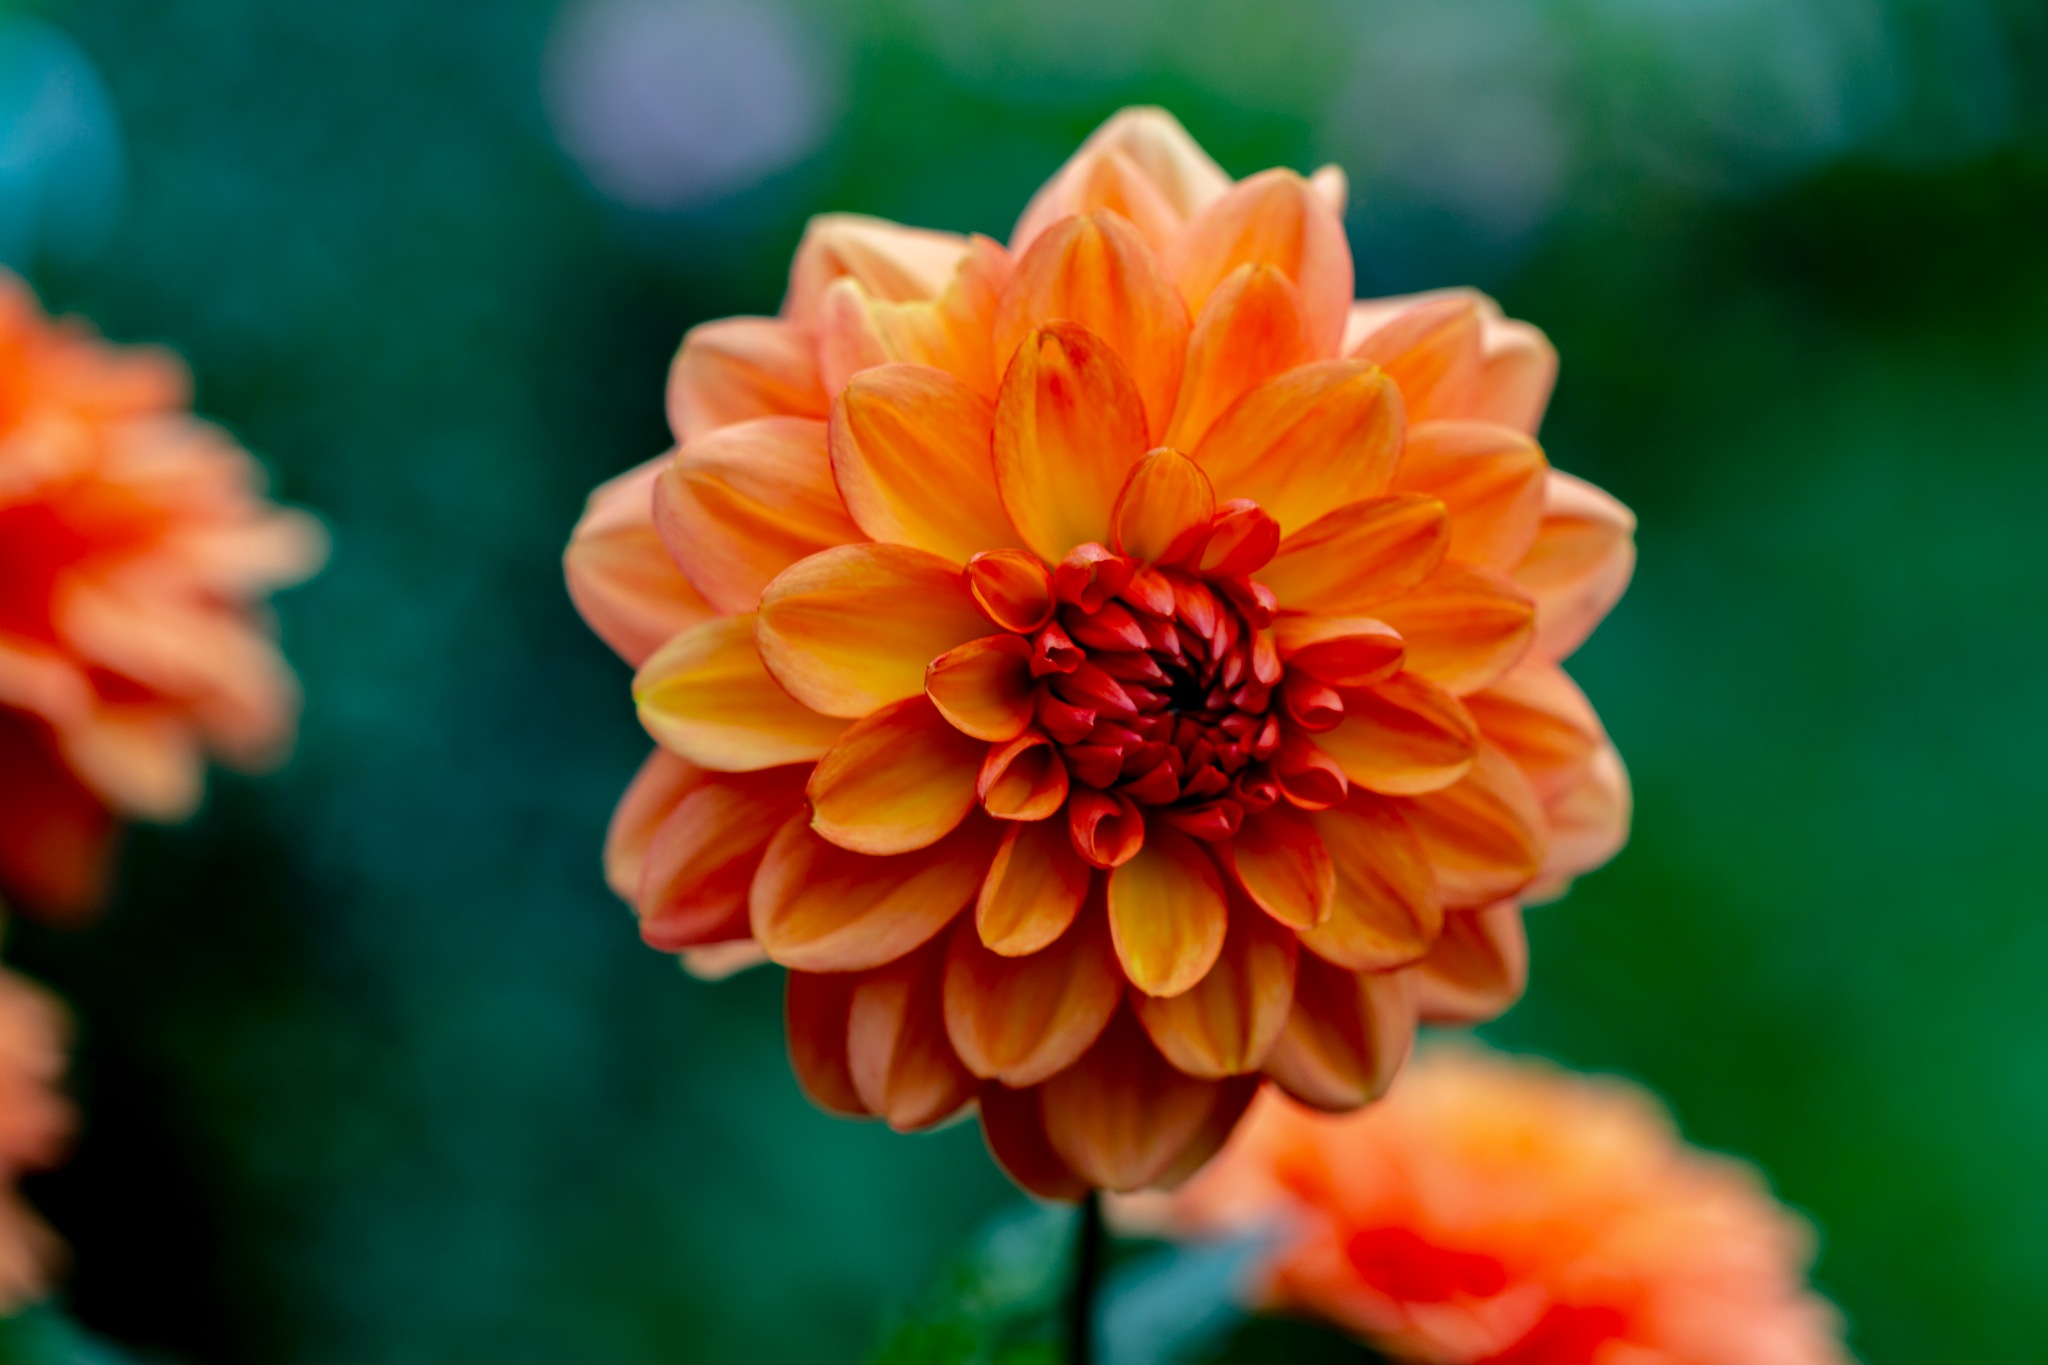 Dahlia in September III by carljan w carlsson